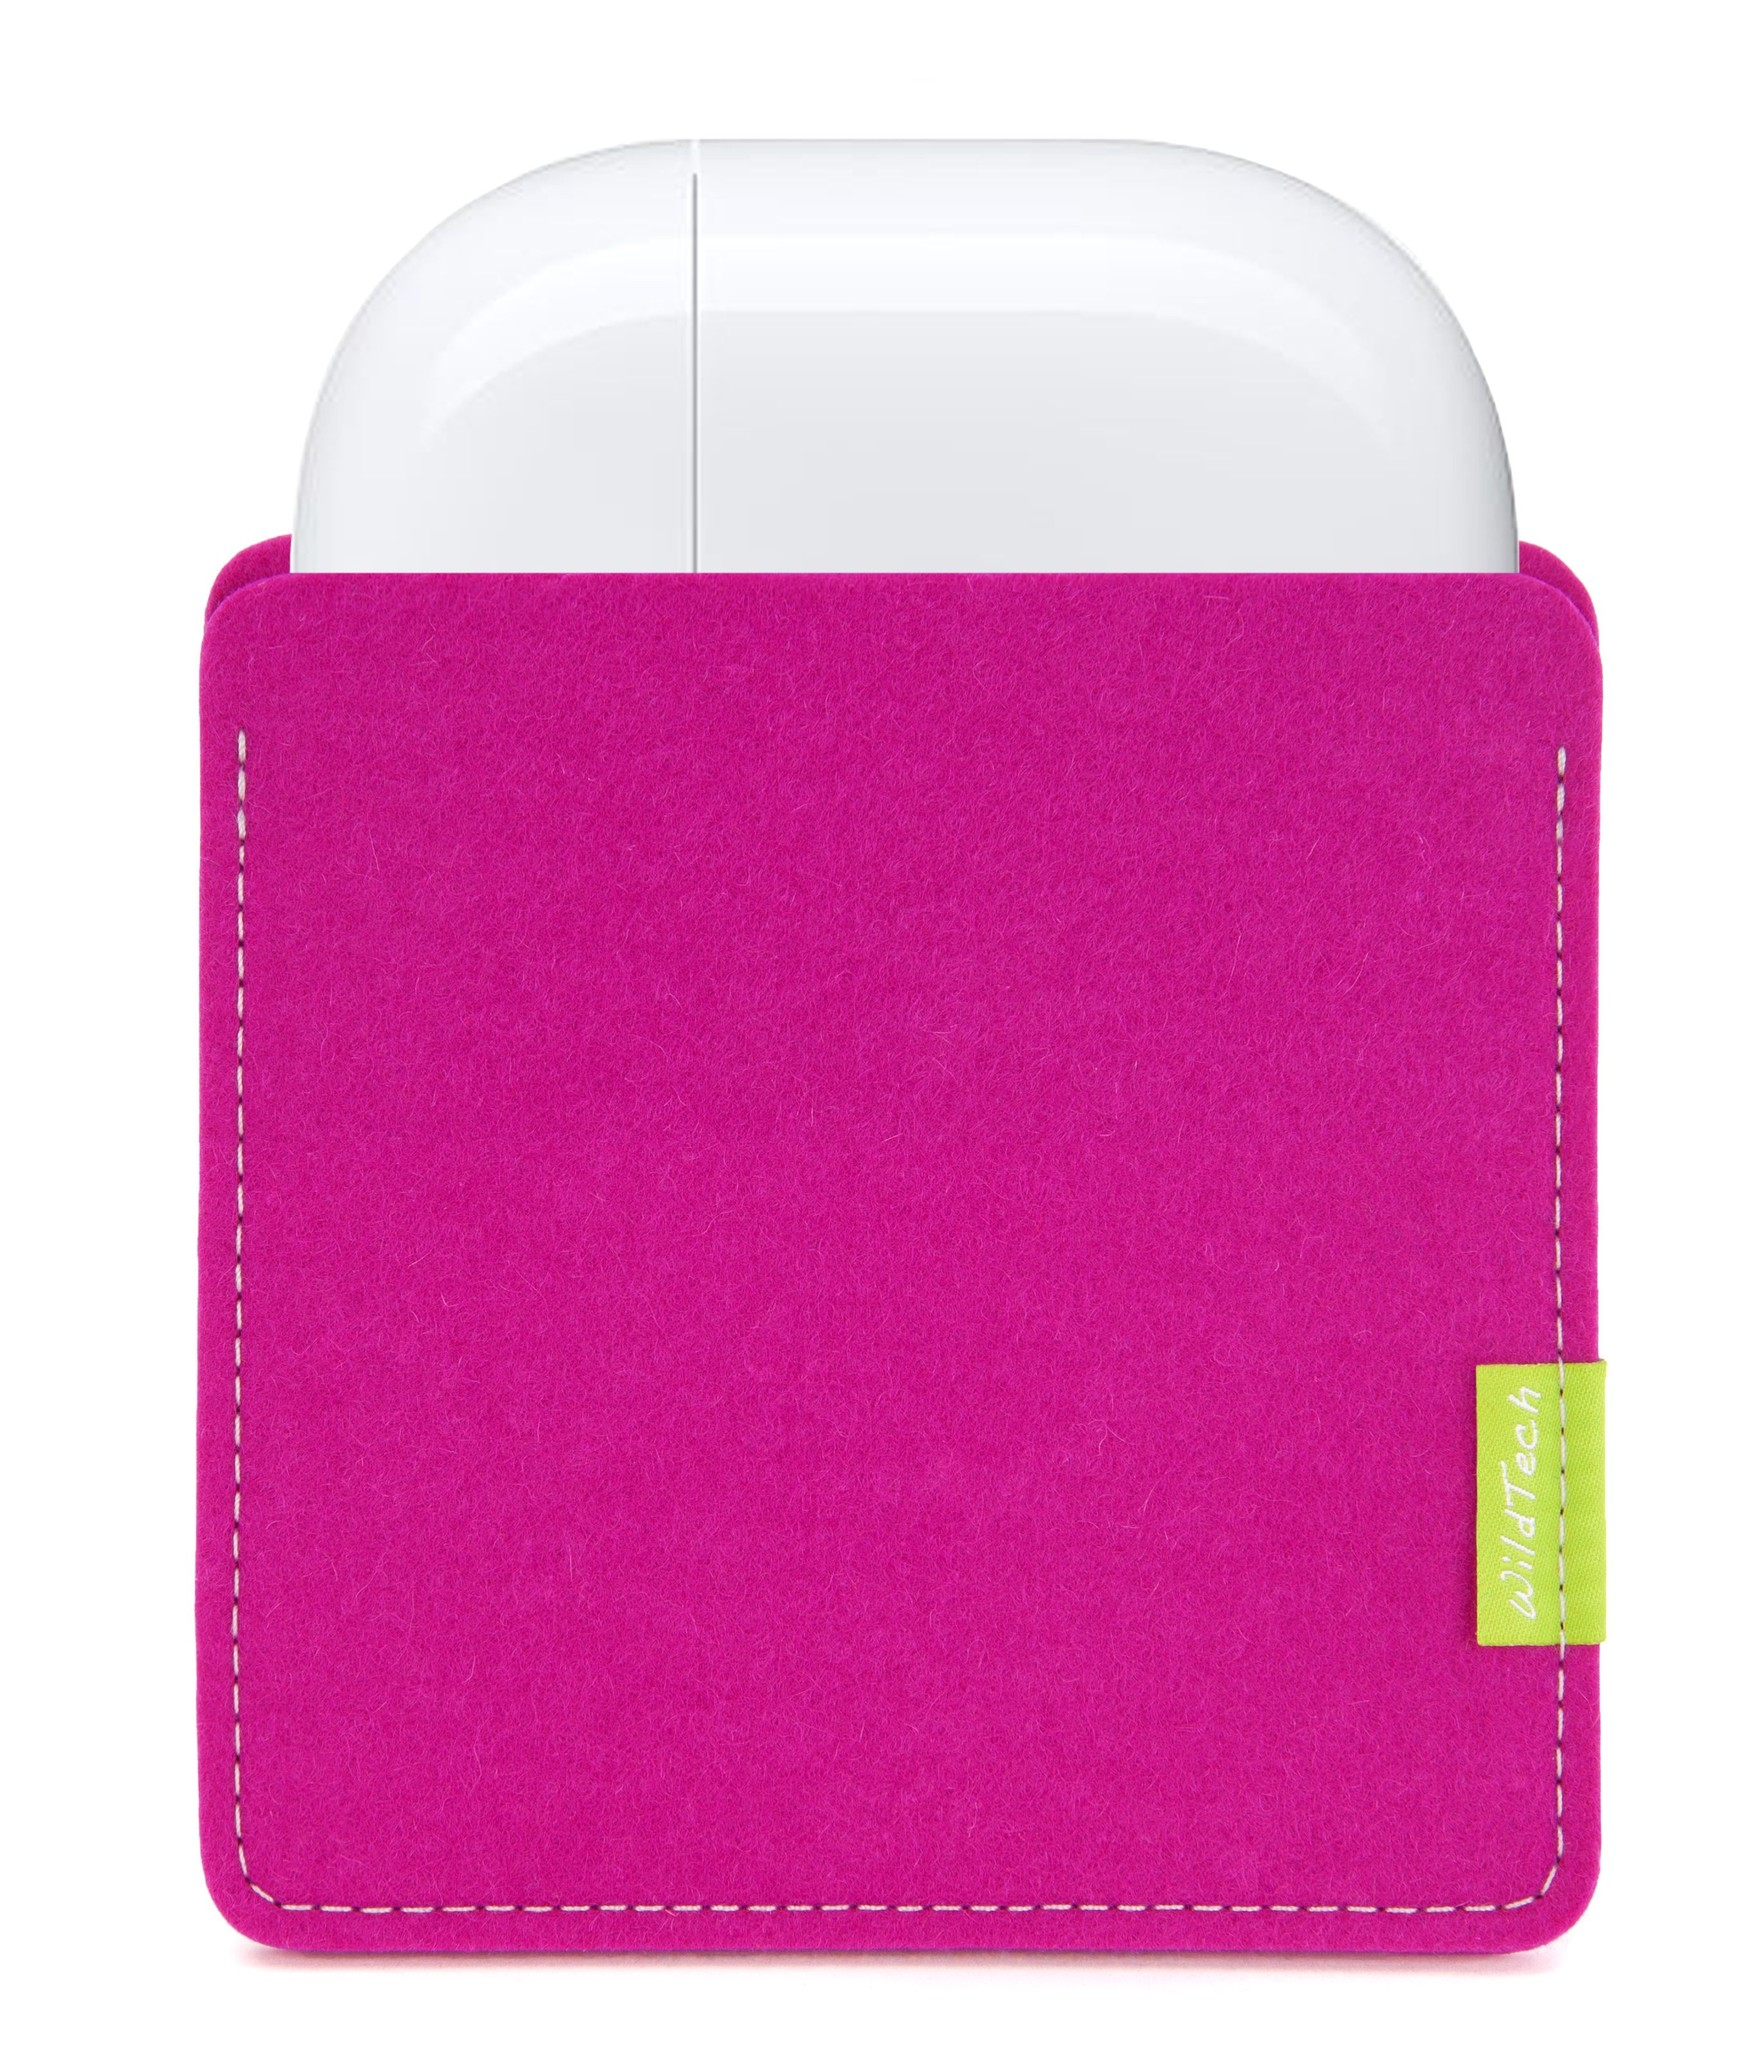 AirPods Sleeve Pink-1